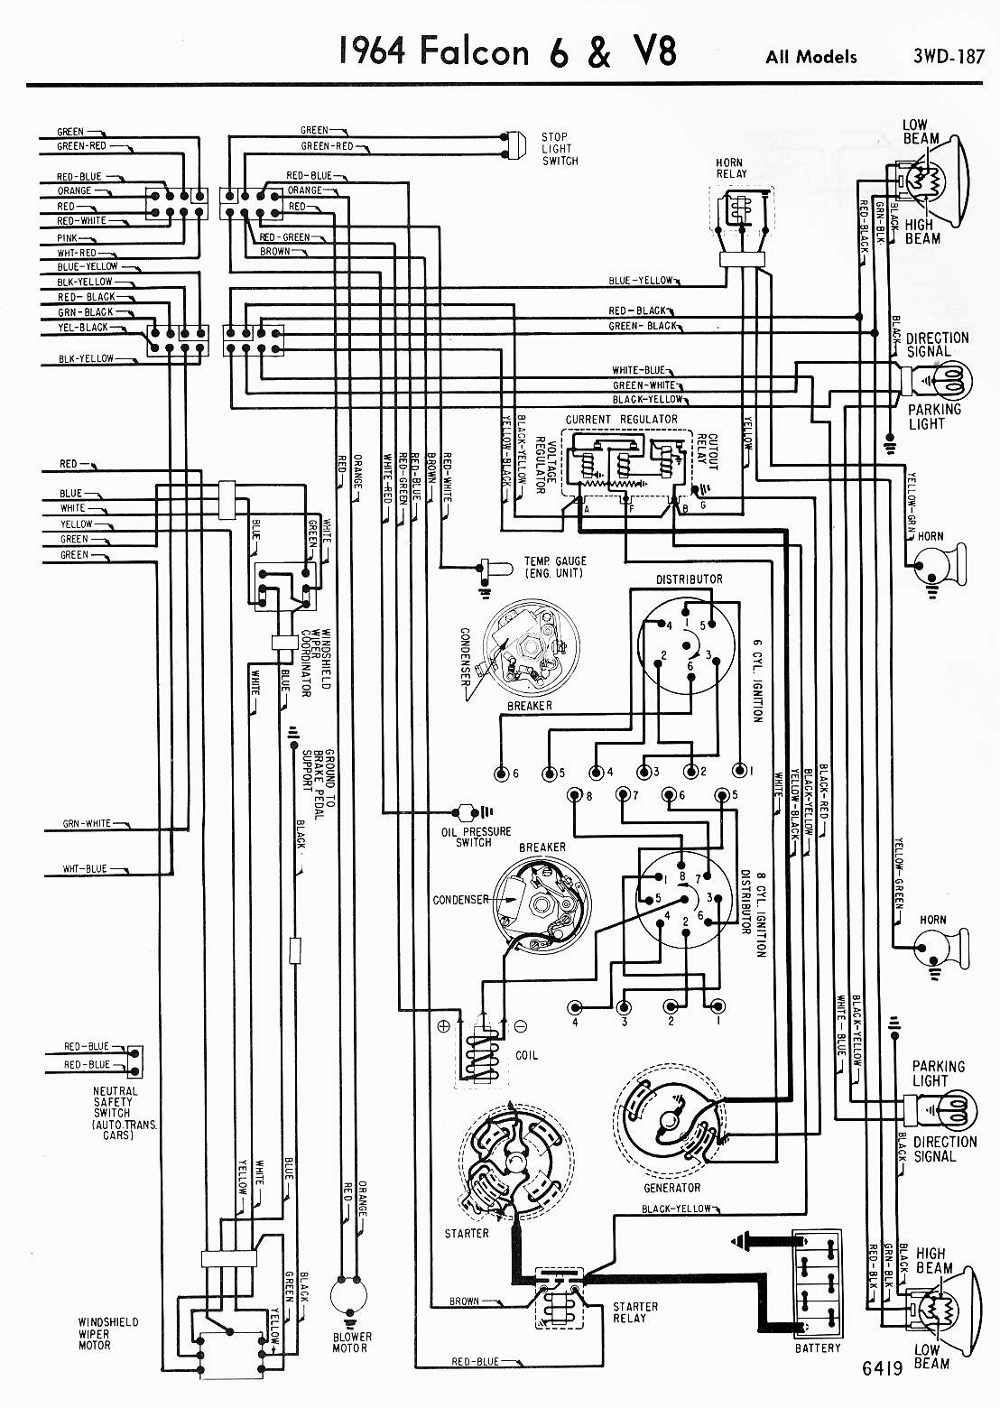 1964 ford falcon wiring diagram wiring diagrams of 1964 ford 6 and rh pinterest com Wiring Schematics 1964 ford falcon tail light wiring diagram